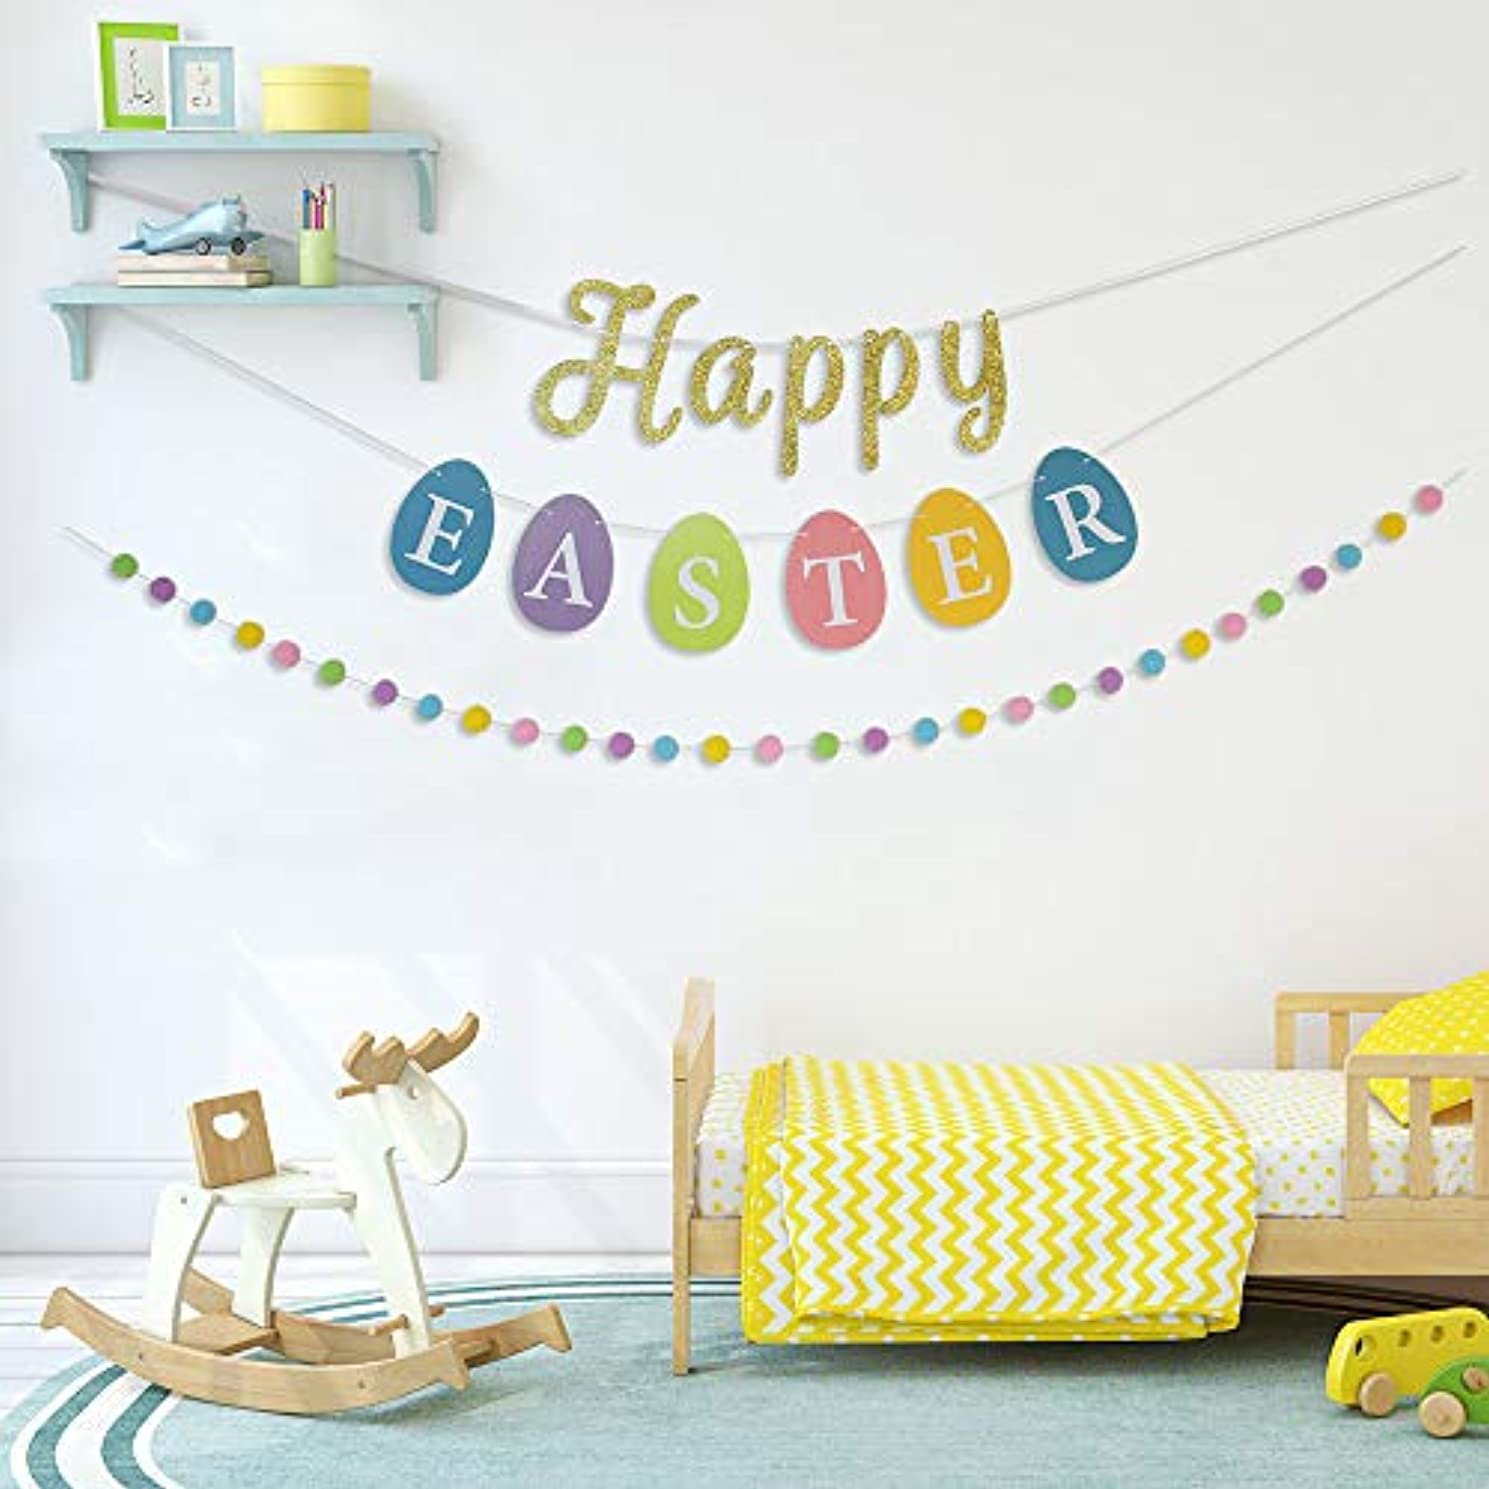 Happy Easter Banner Sign with Clover Garlands Hairy Balls String for Easter Days Decorations